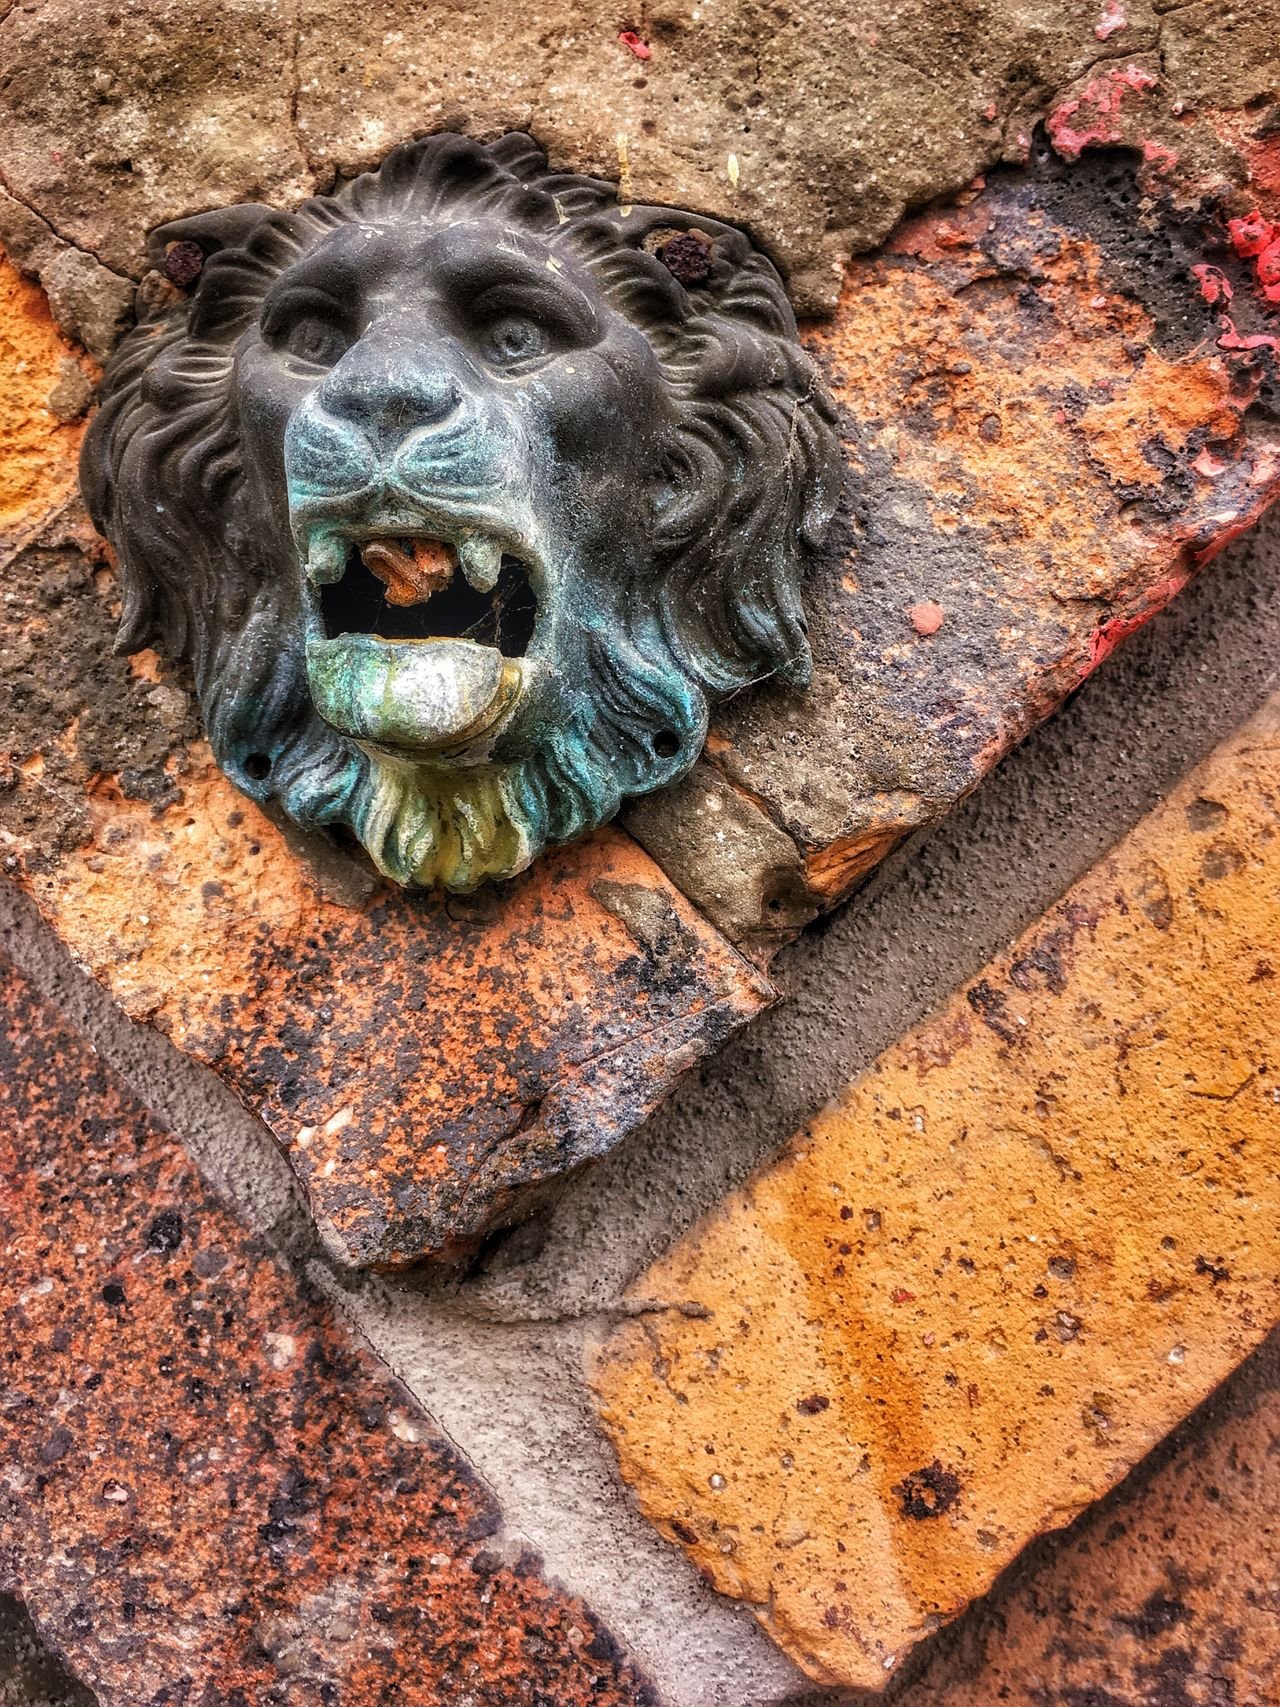 Lion head old fountain detail Outdoors One Animal No People Day Architecture Mammal Animal Themes Gargoyle Building Exterior Nature Close-up Lion Lions HEAD Fountain Vintage Old Old-fashioned Old Architecture Vintage Style Vintage Photography Vintage Signs Bricks Lion Sculpture Detail